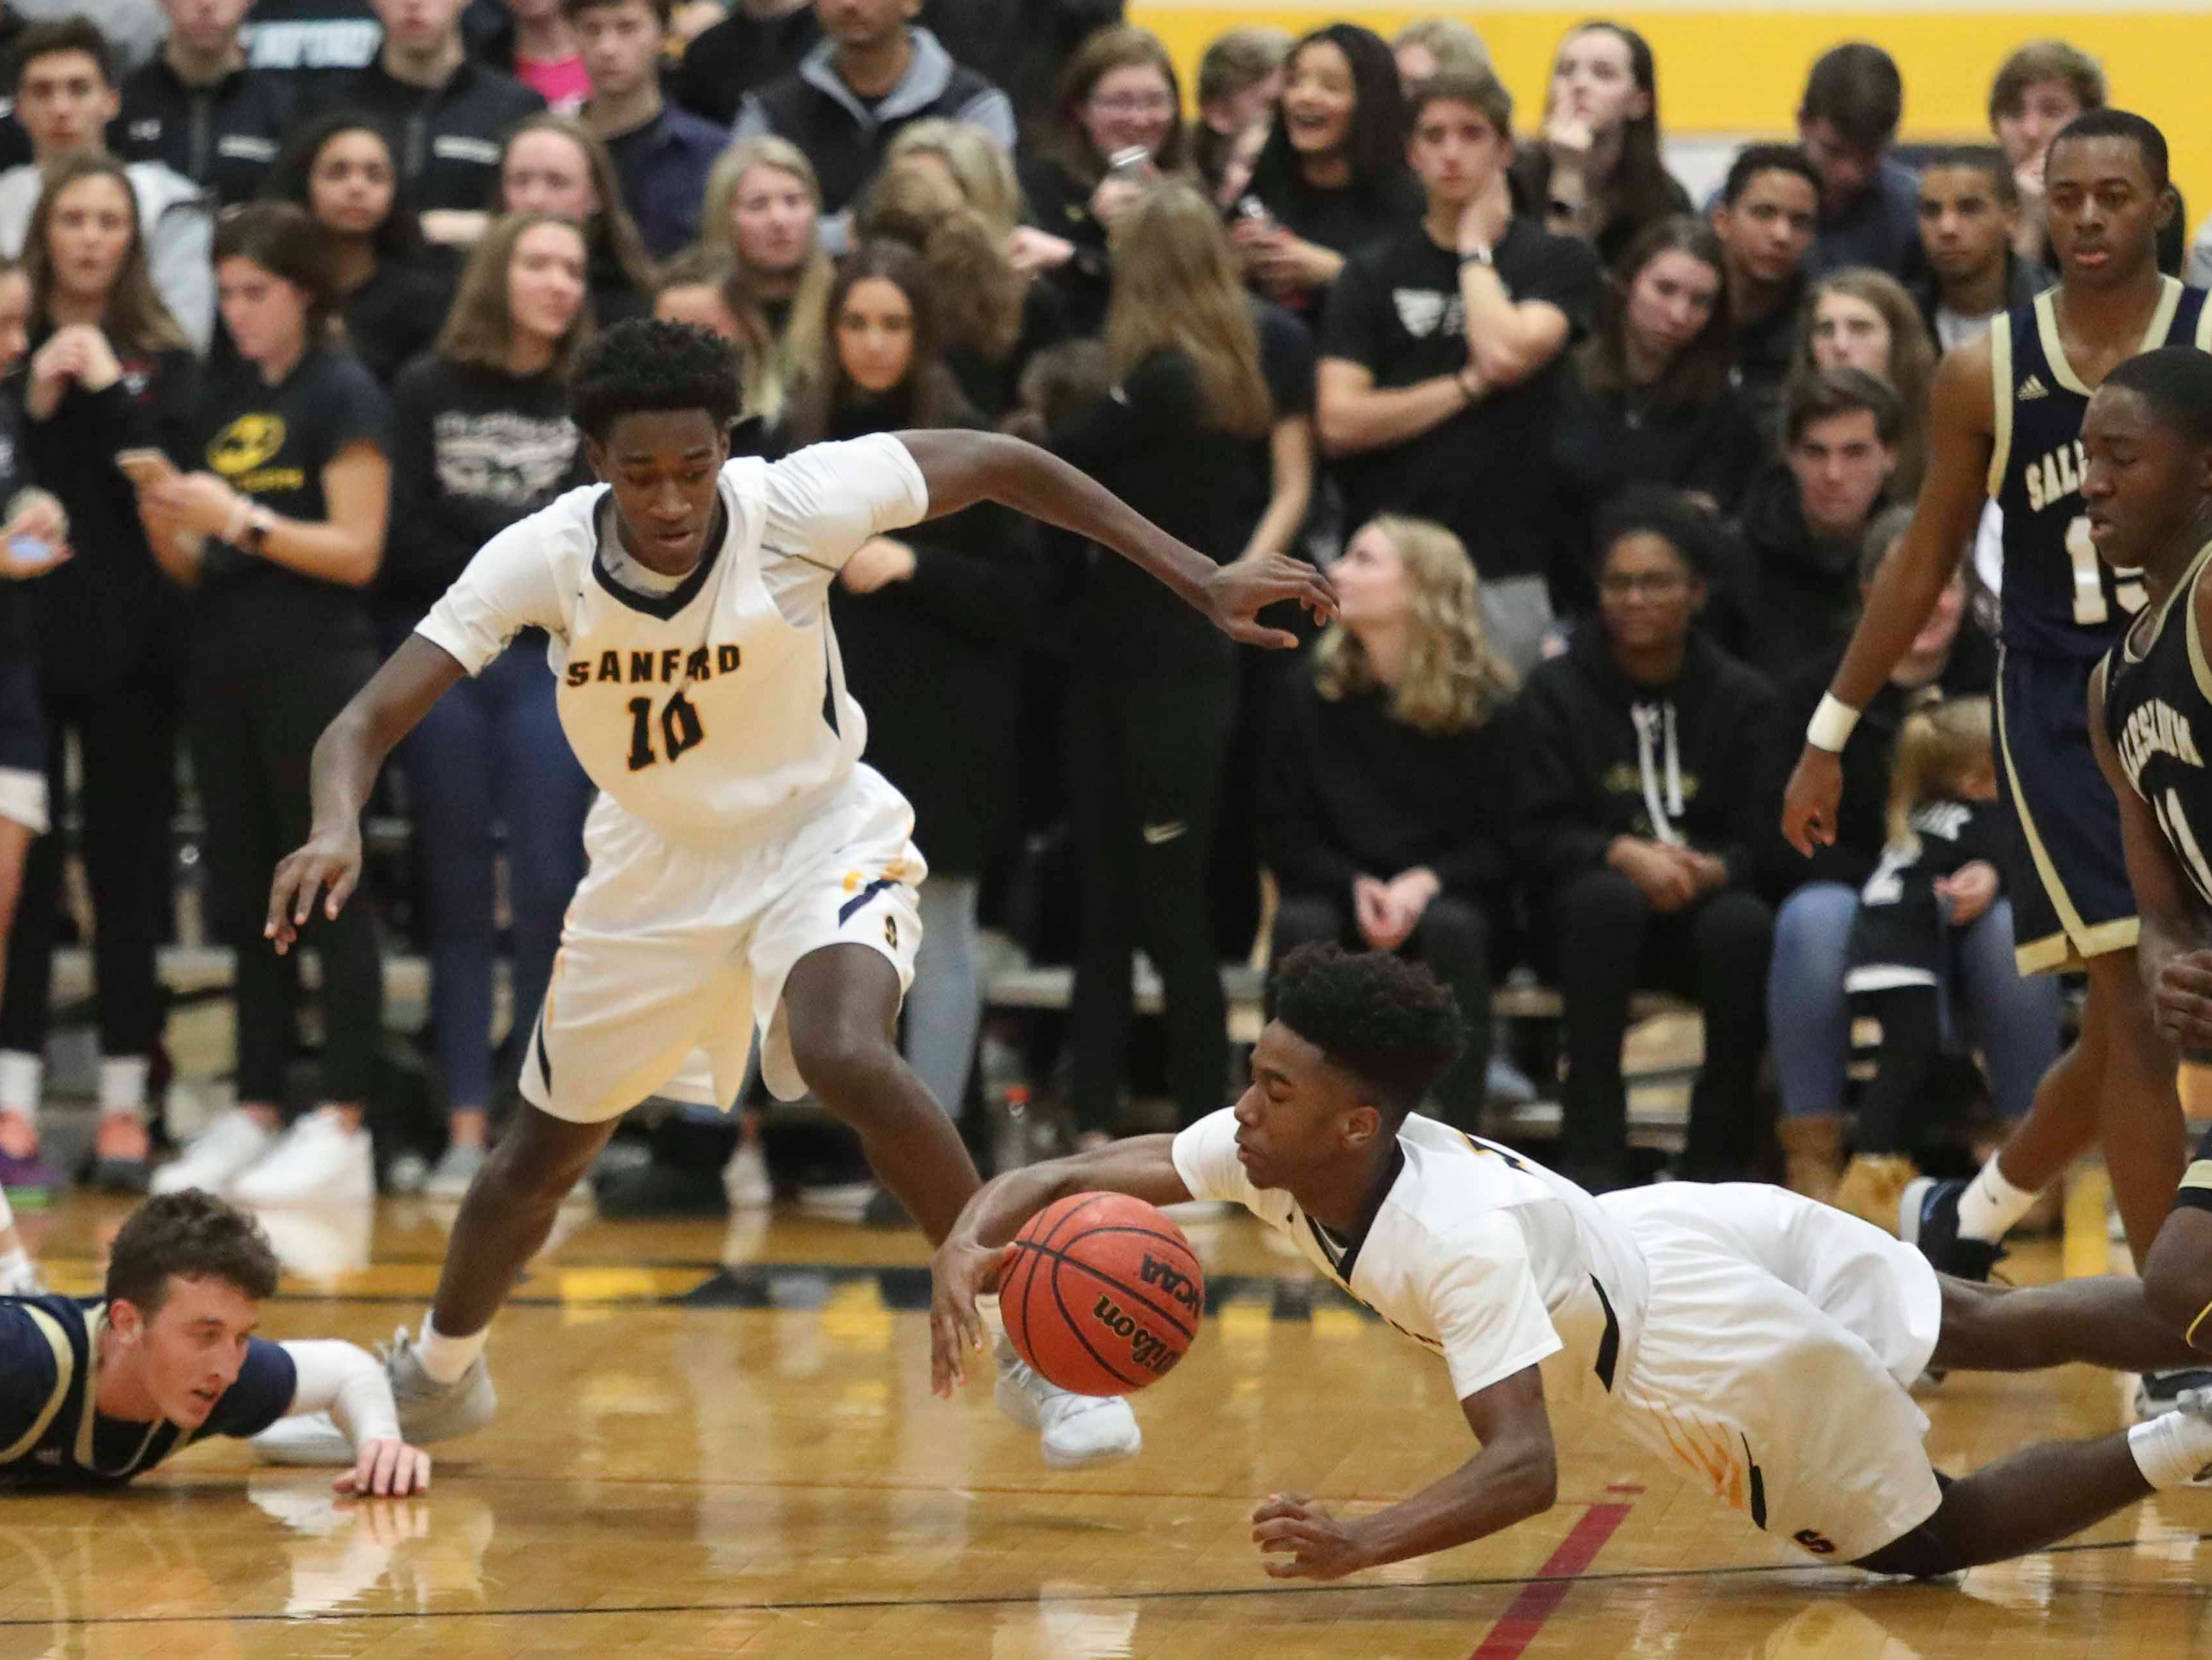 Sanford's Nasir Cowan snags a loose ball in front of teammate Devin Harris (10) and Salesianum's Jack Brown (bottom left) during the Warriors' 65-47 win at home Friday.